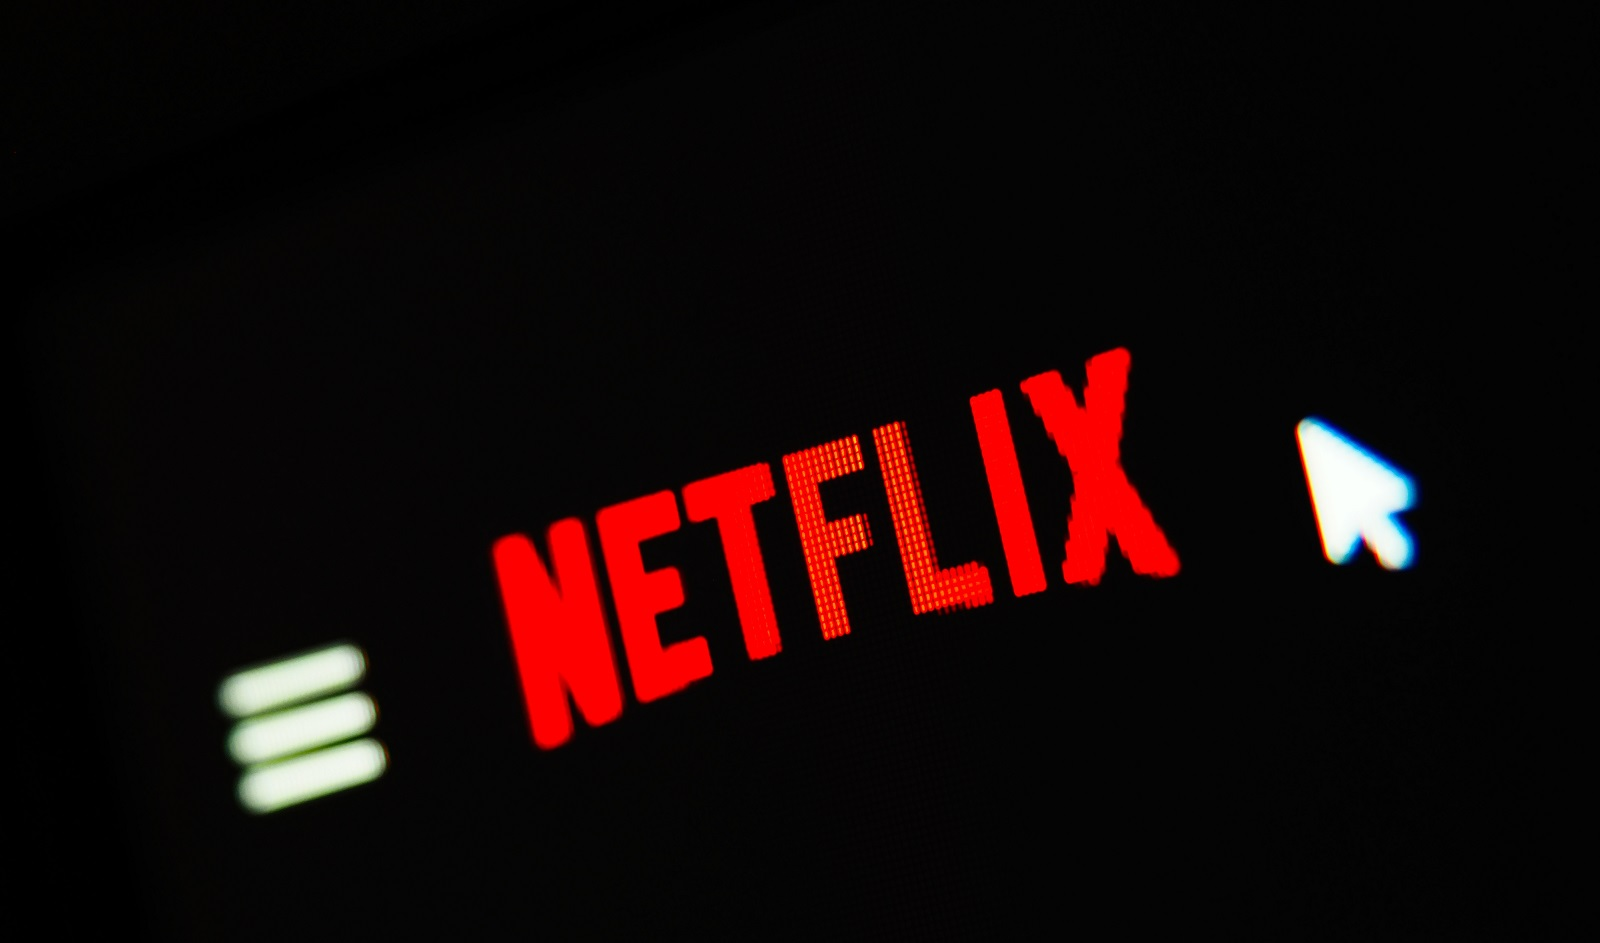 This clever Netflix scam attempts to steal your credit card information